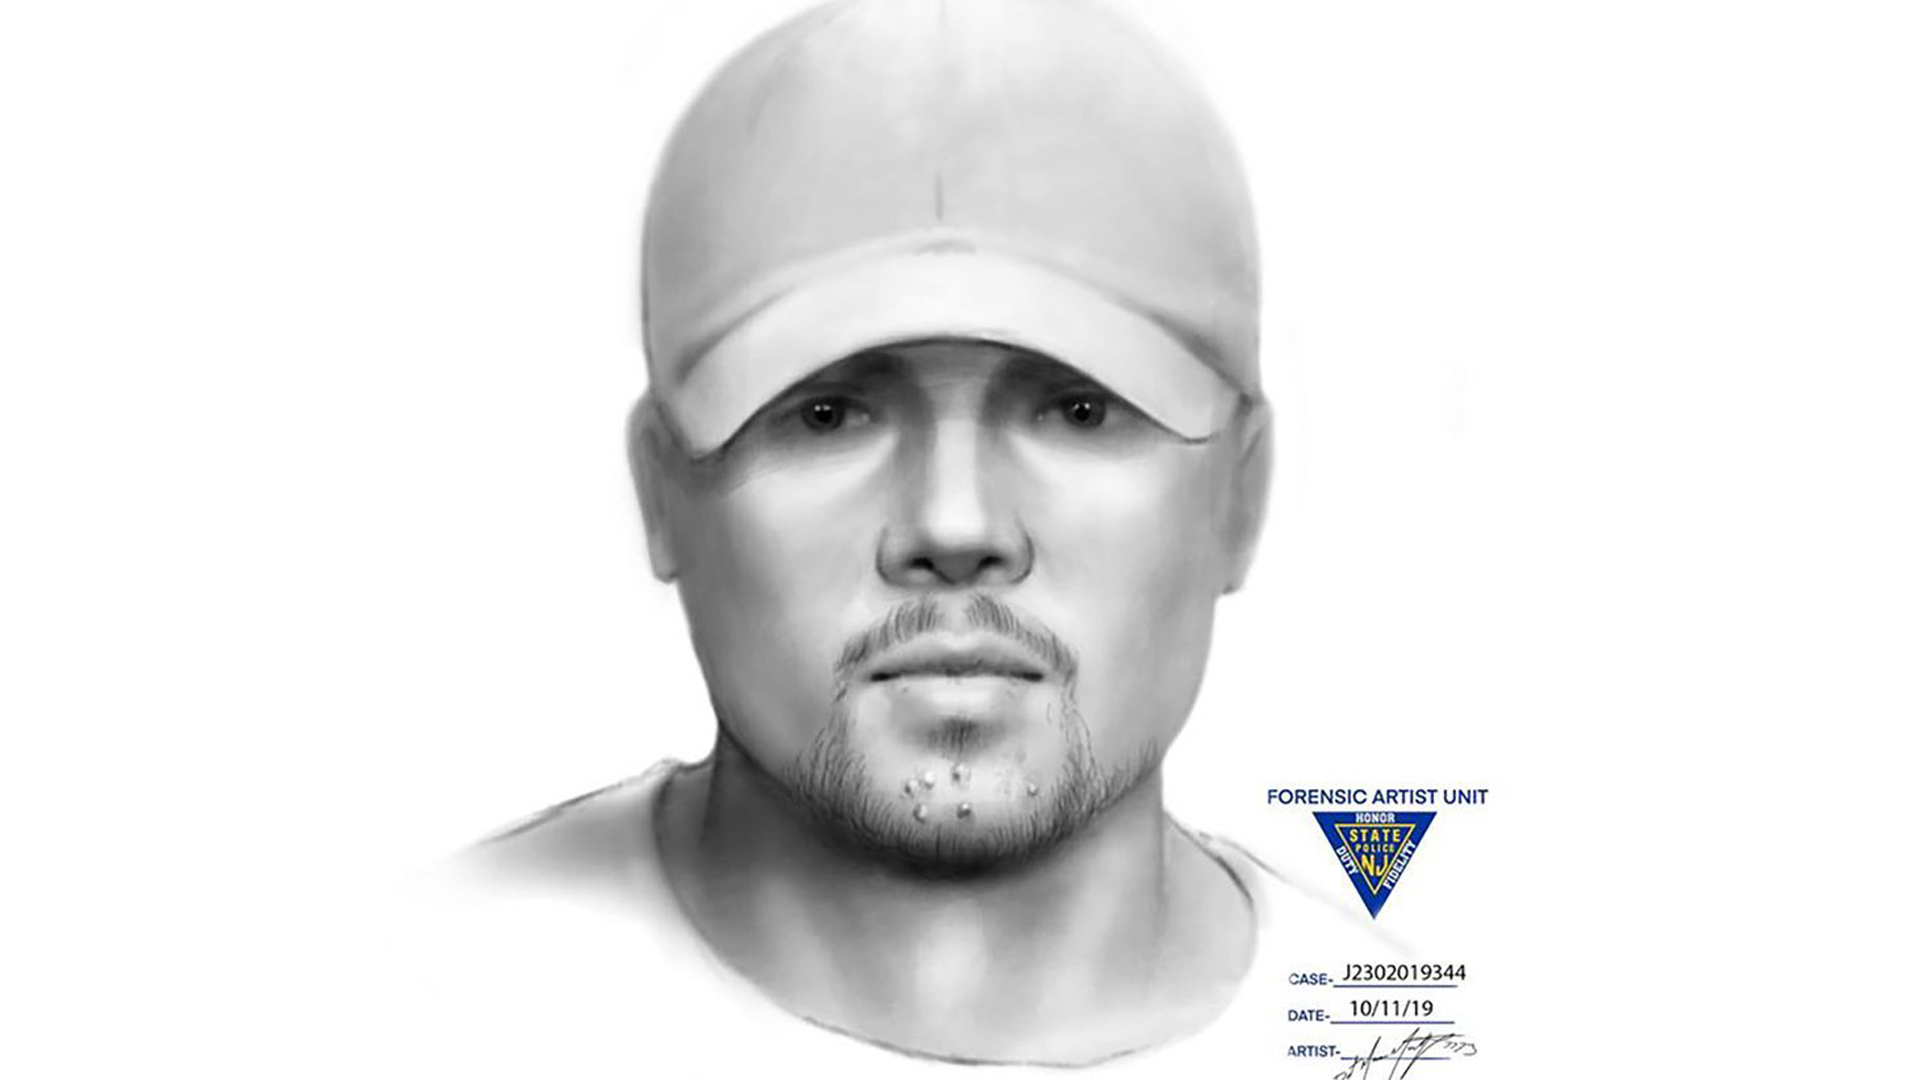 Investigators released a composite sketch of a person who was reportedly seen in the park around the time Dulce Maria Alavez went missing. (Credit: Bridgeton Police Department)